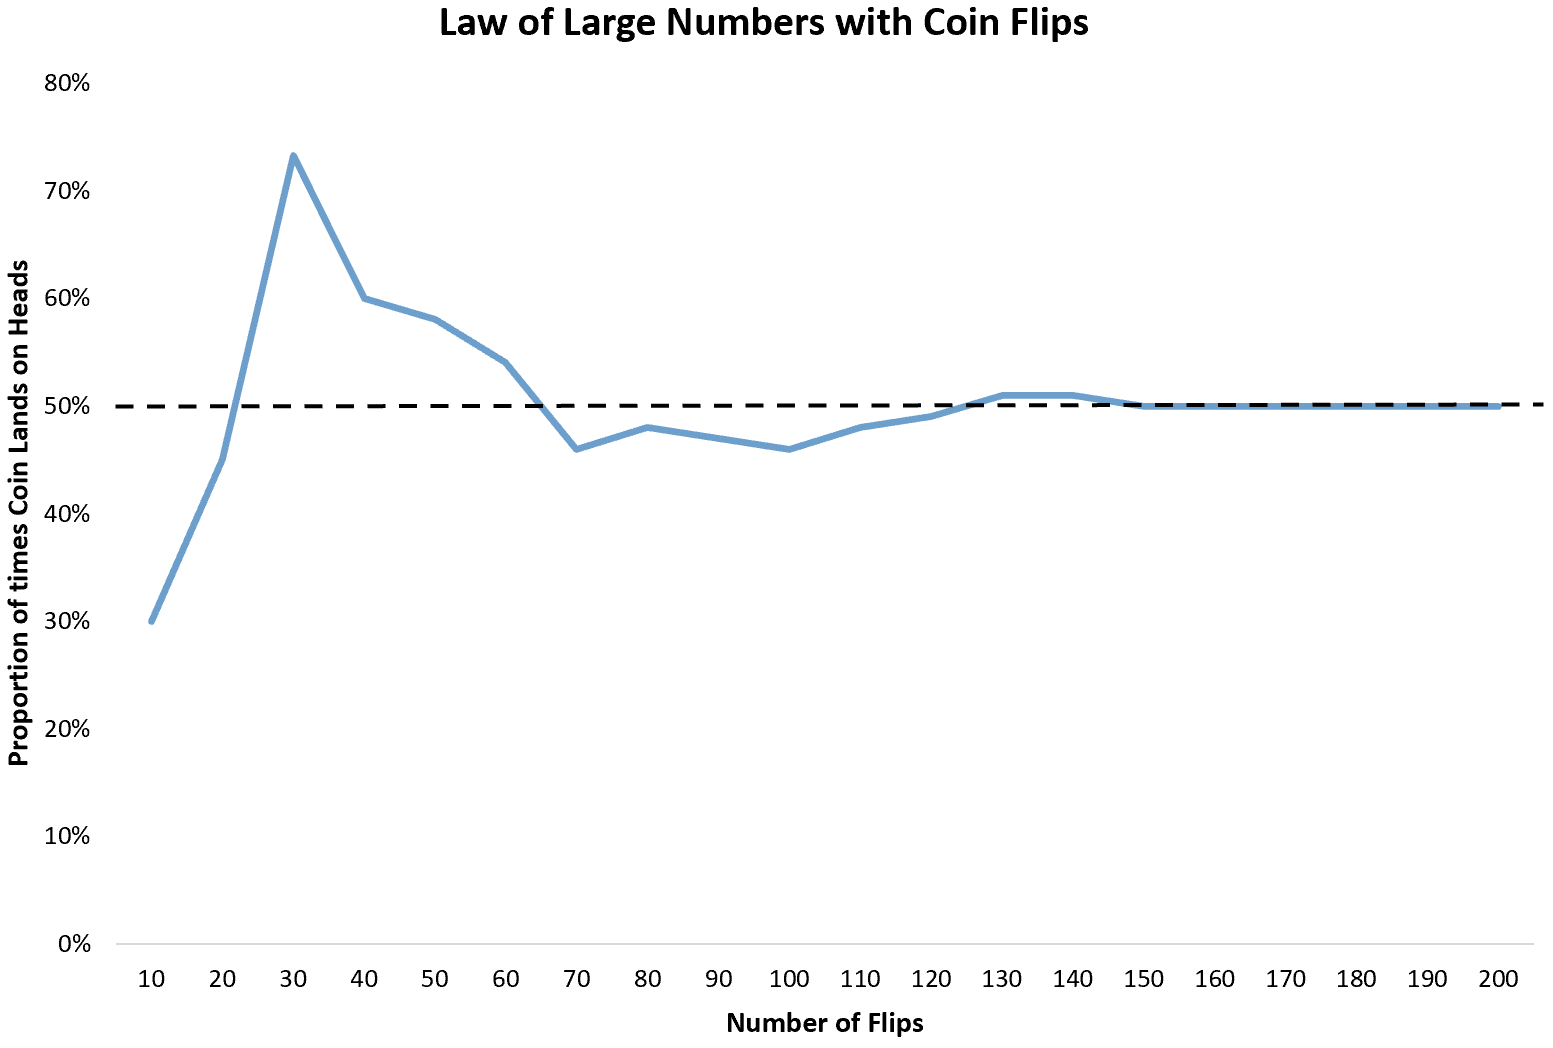 Law of large numbers with coin flips